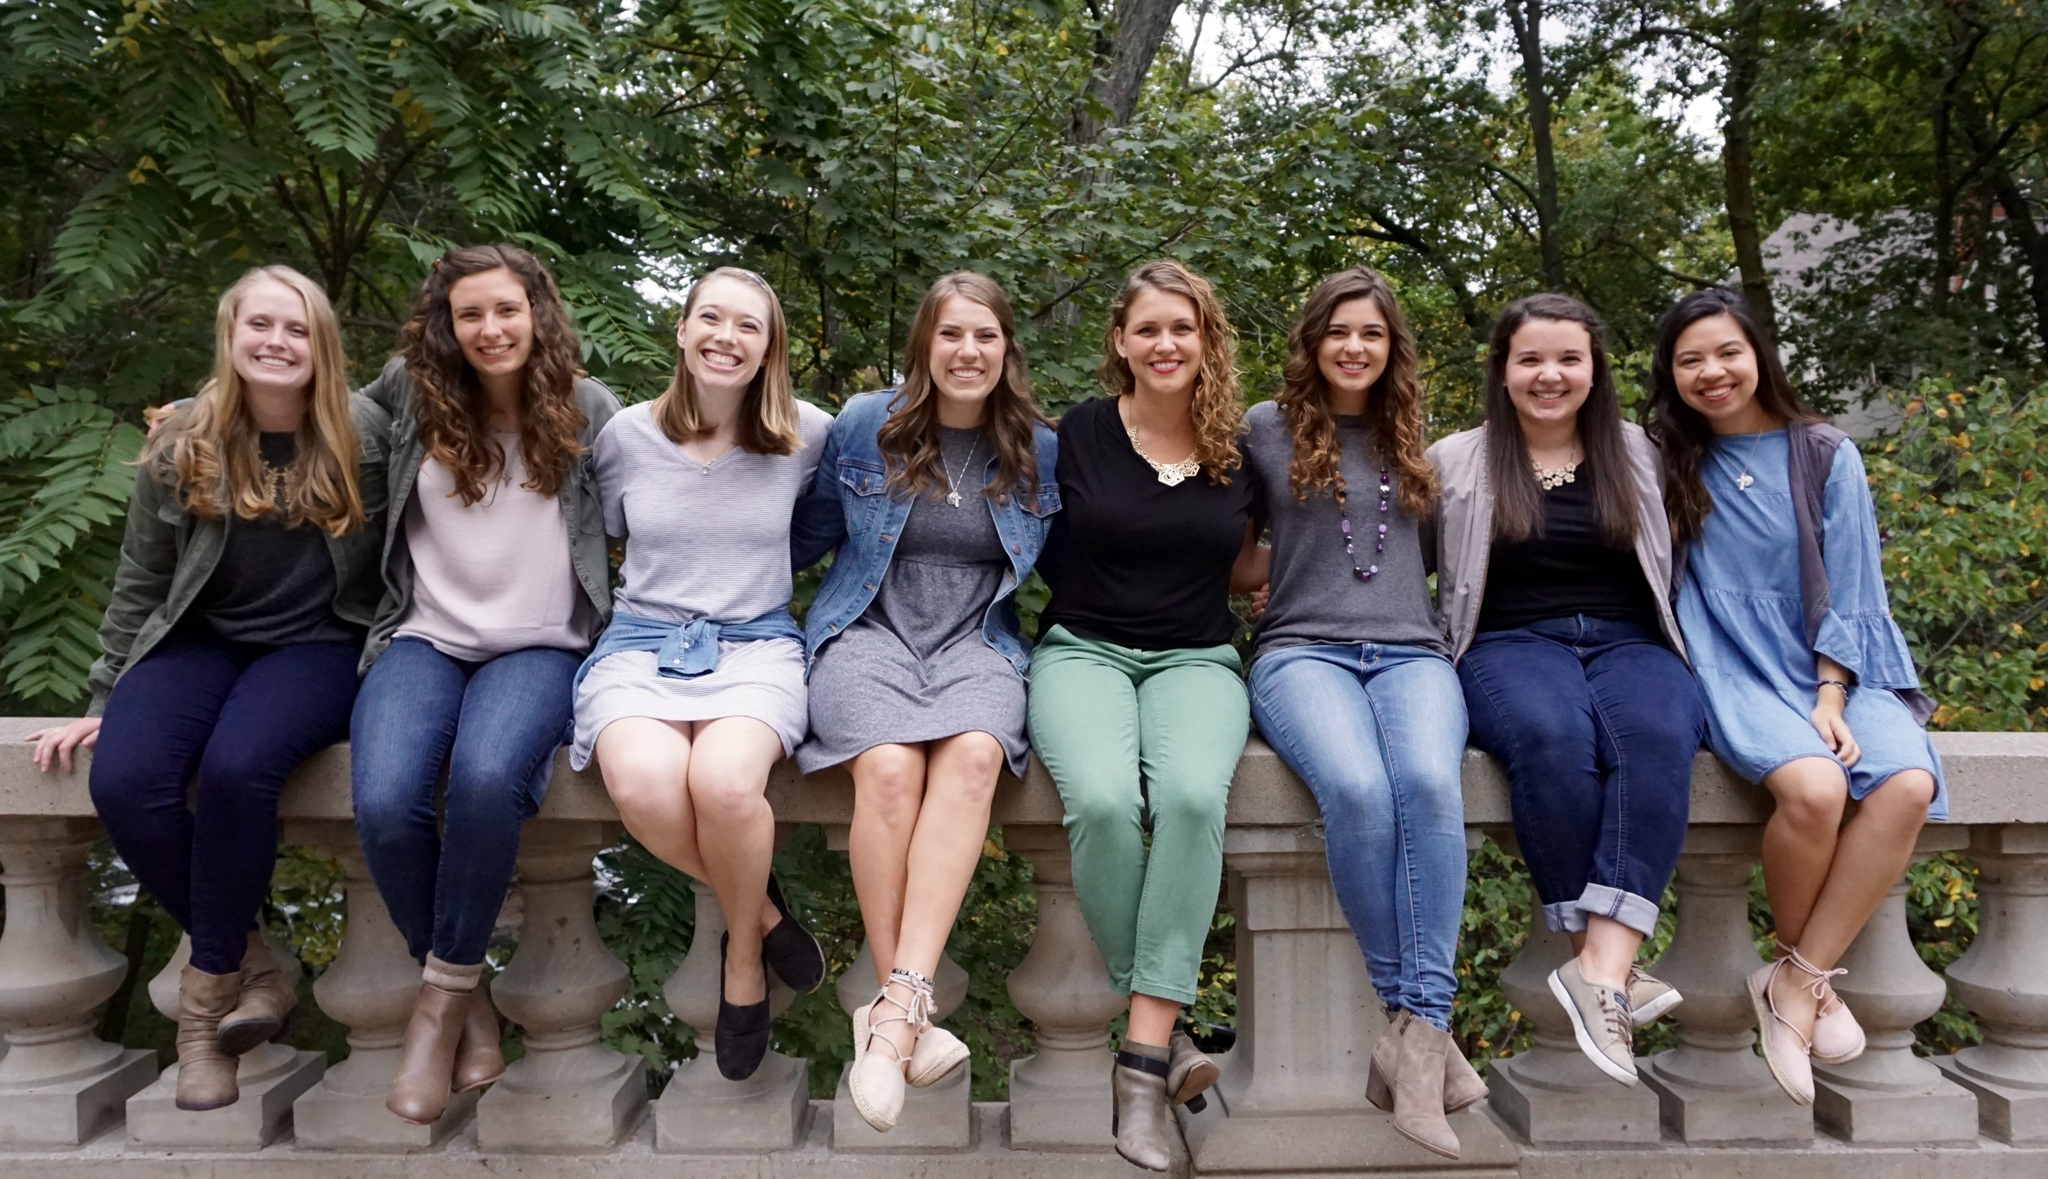 The women of North Siena (Colette, Megan, laura, victoria, monica, taylor, haley, hannah)